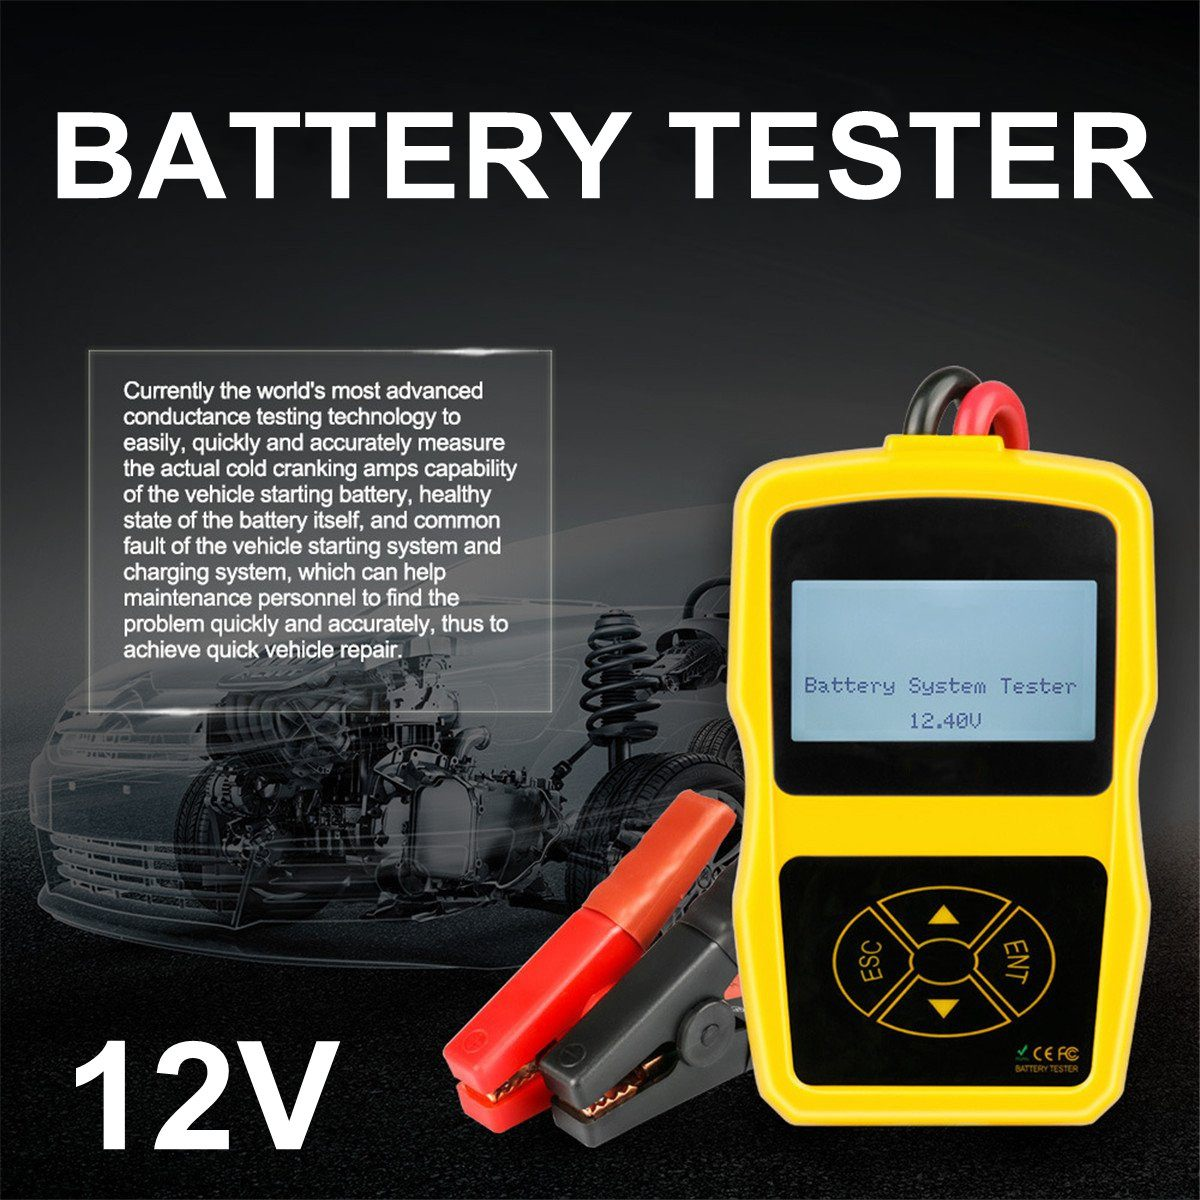 12V Car Battery Tester LCD Display Digital Automotive Diagnostic Battery Tester Analyzer Vehicle Cranking Charging Scanner Tool